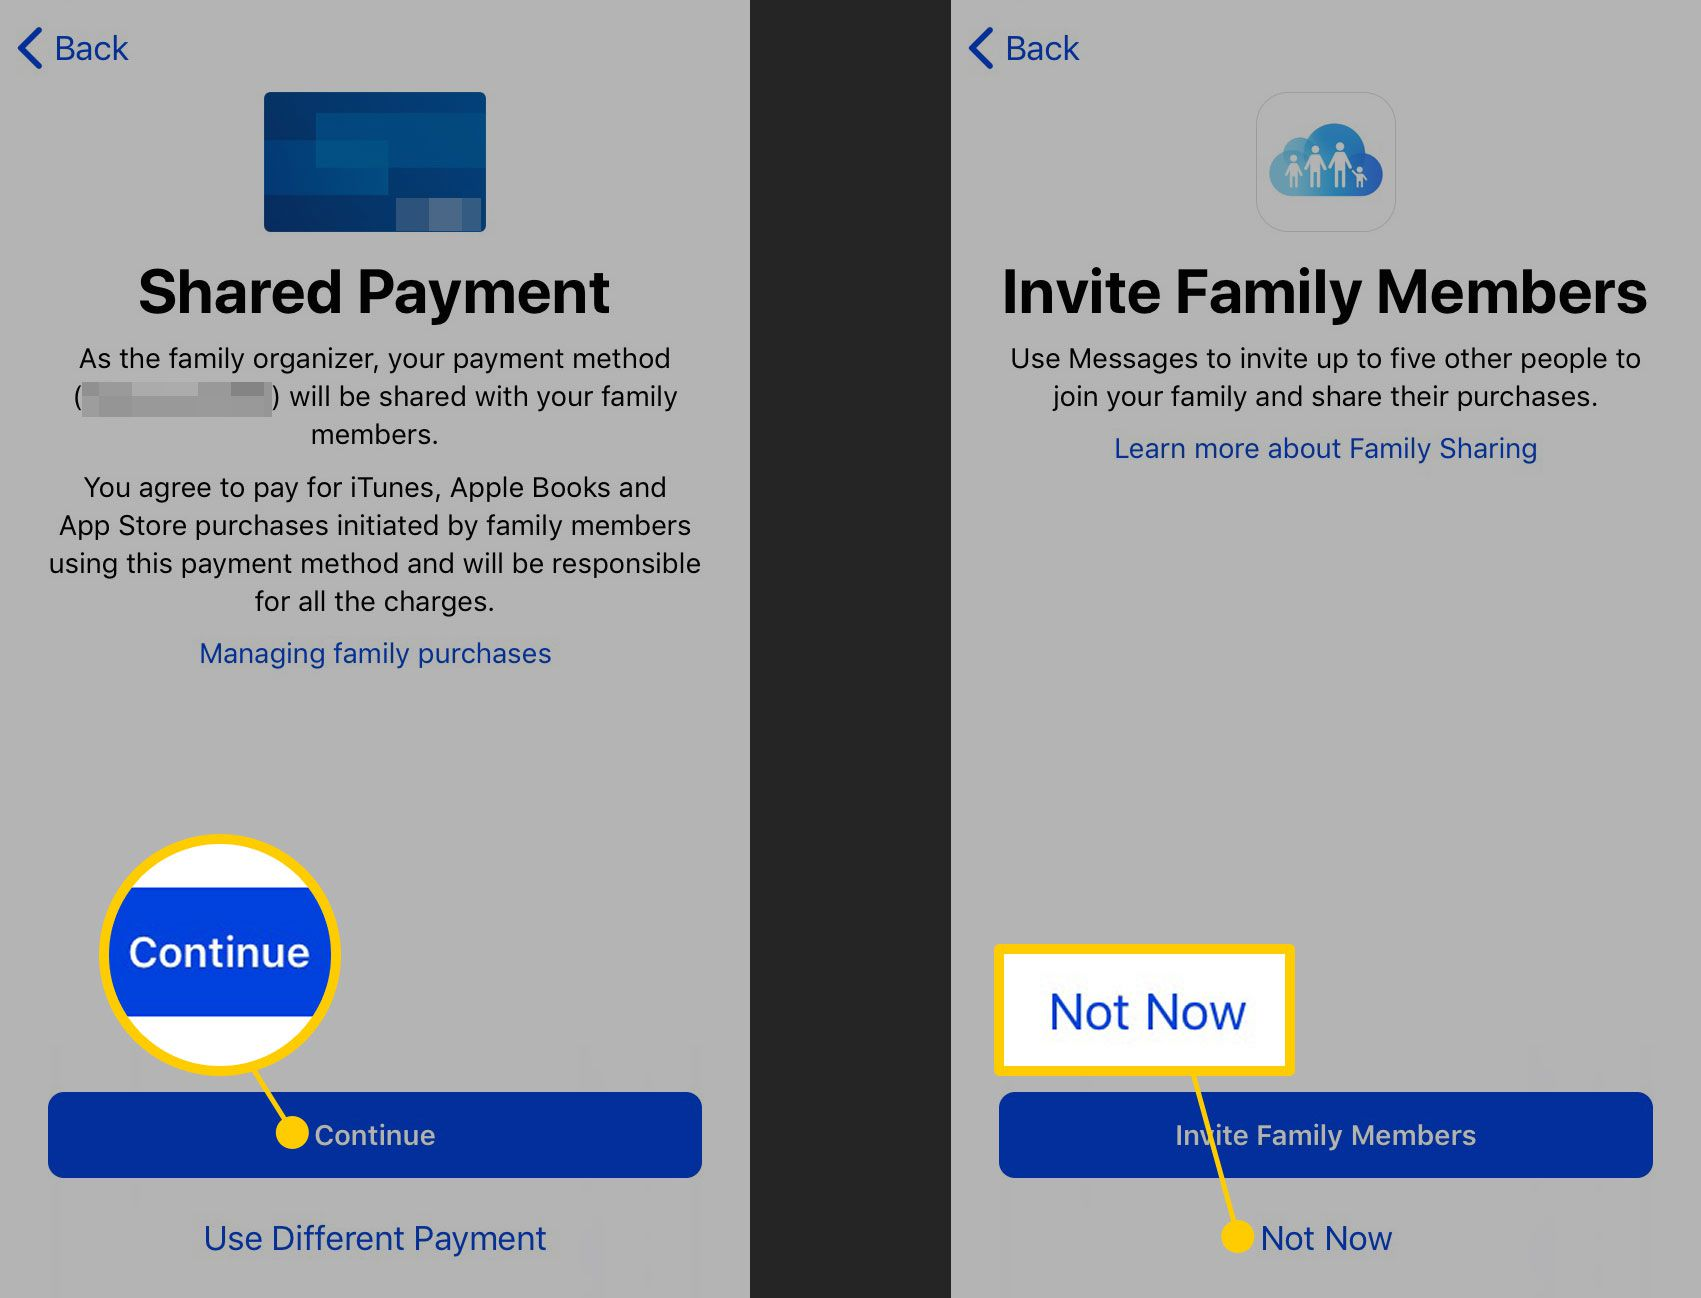 Confirming payment and skipping inviting family members for Family Sharing